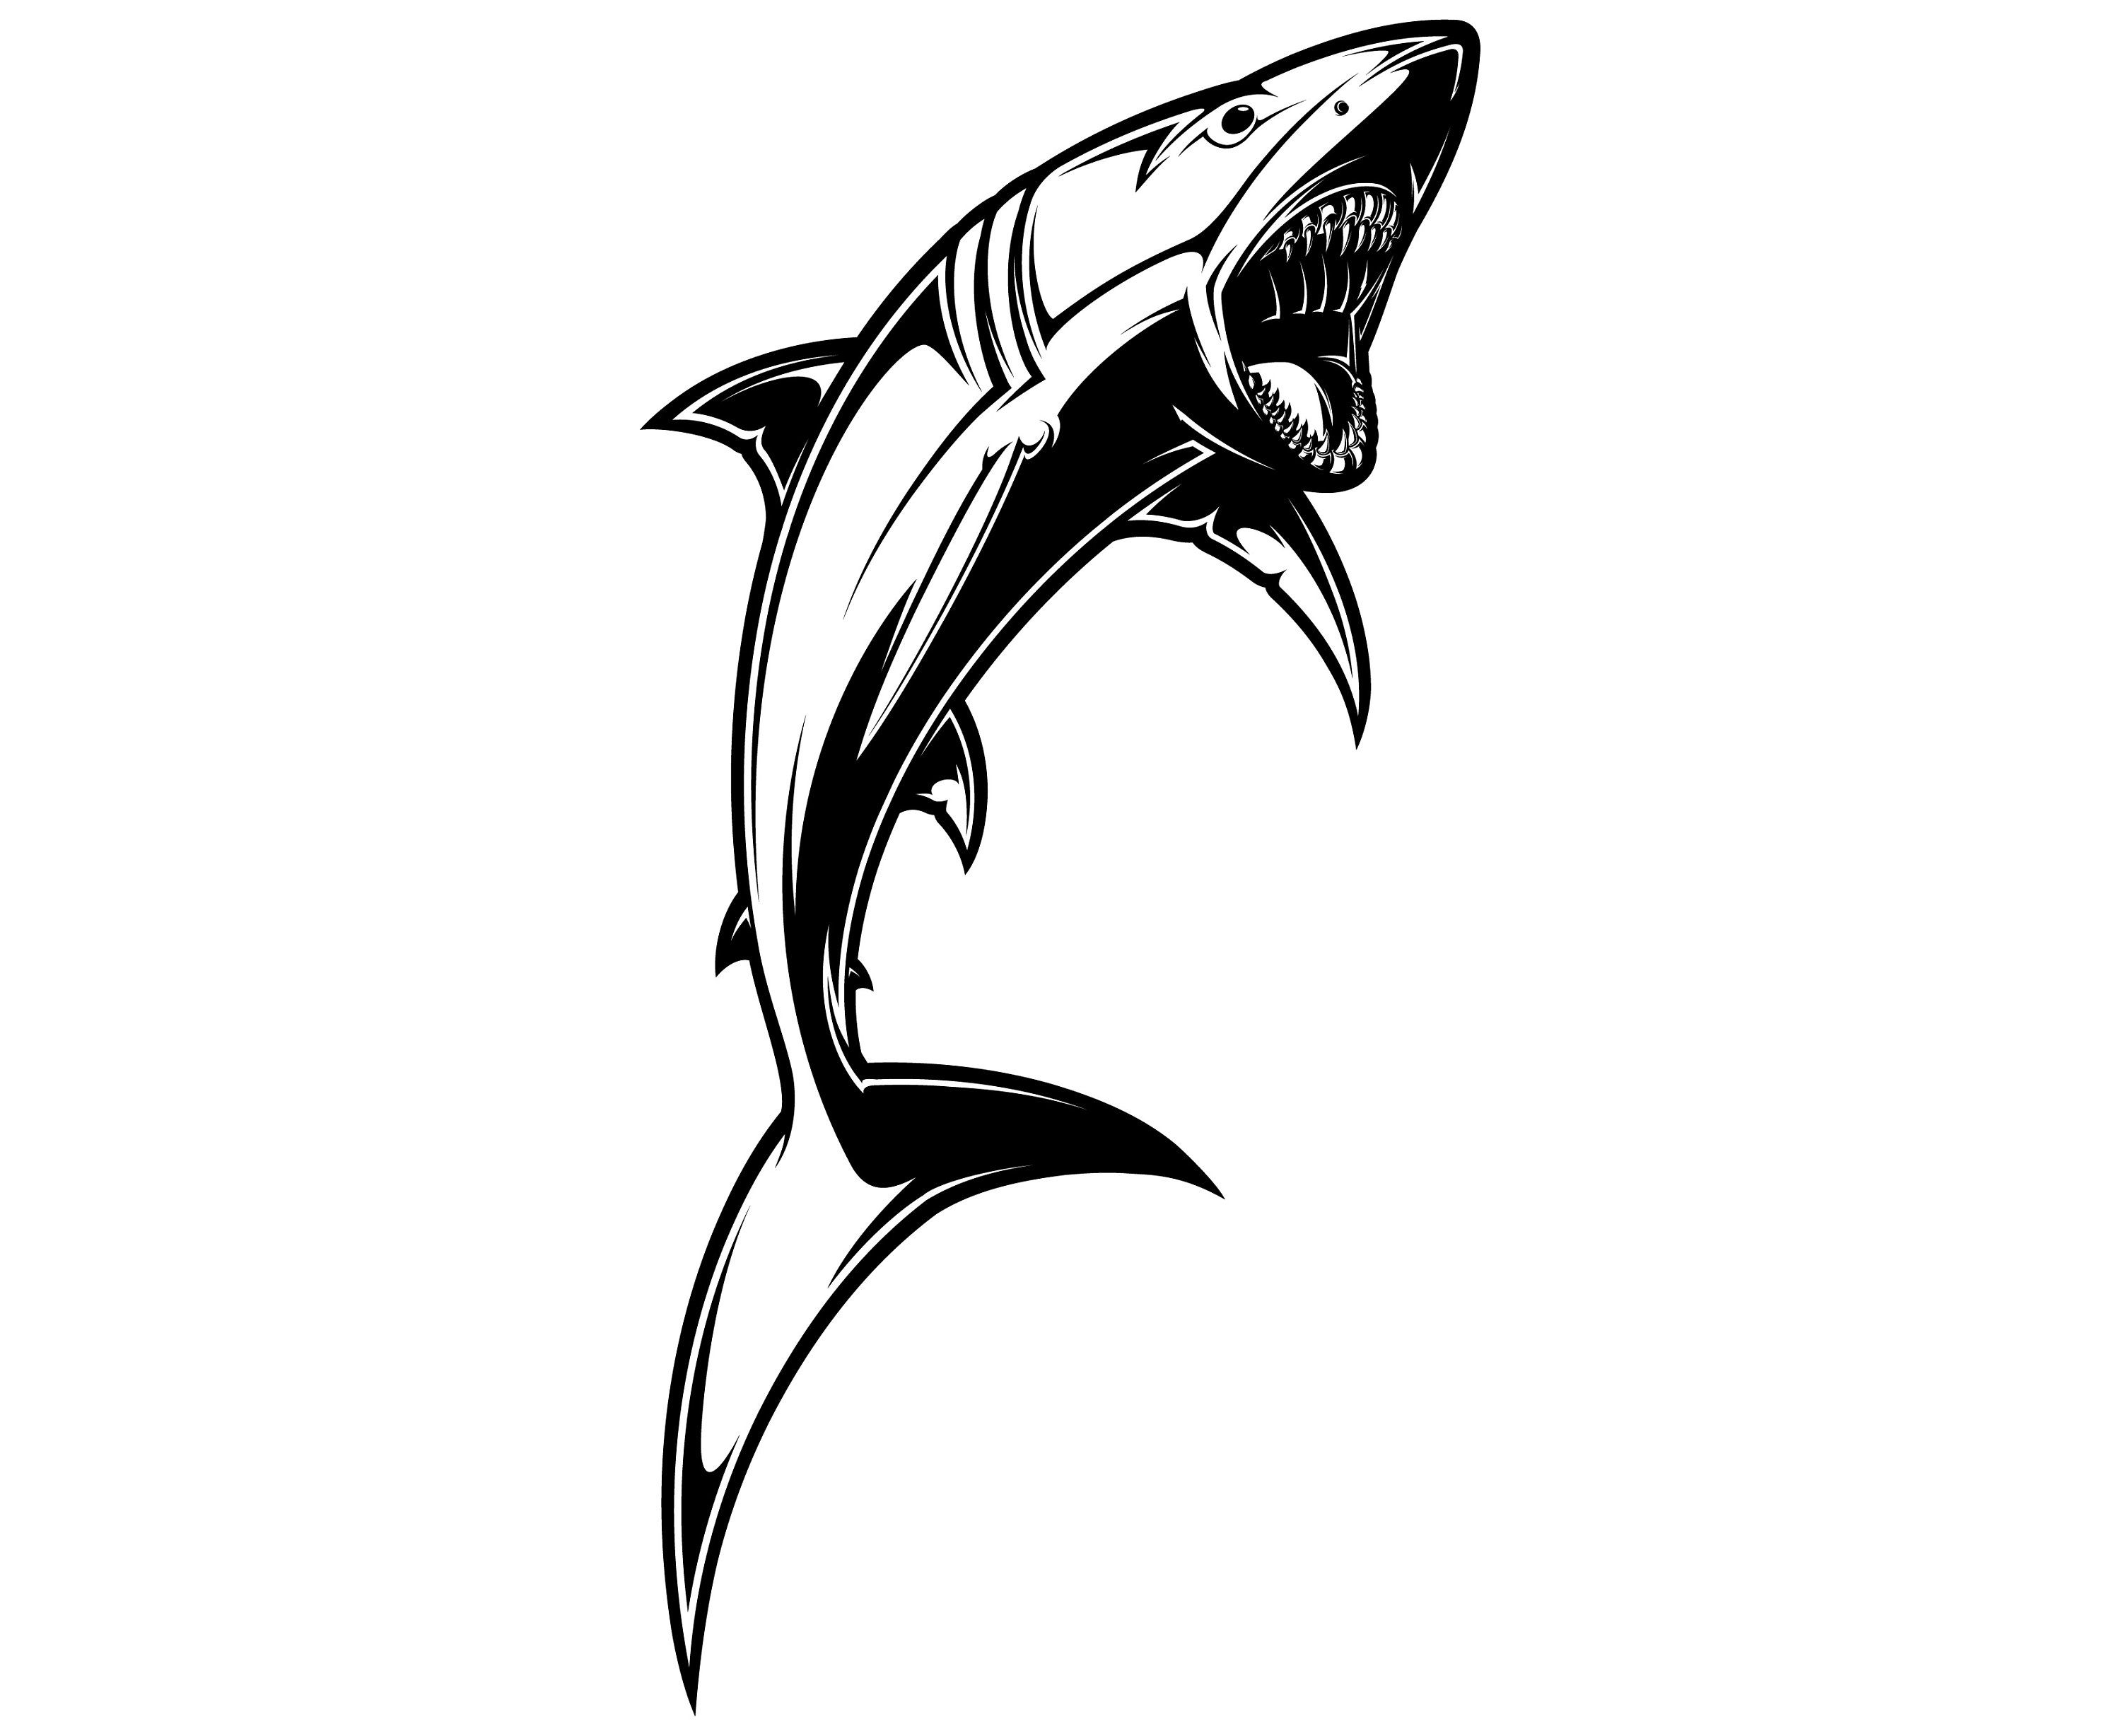 The Best Free Shark Silhouette Images Download From 483